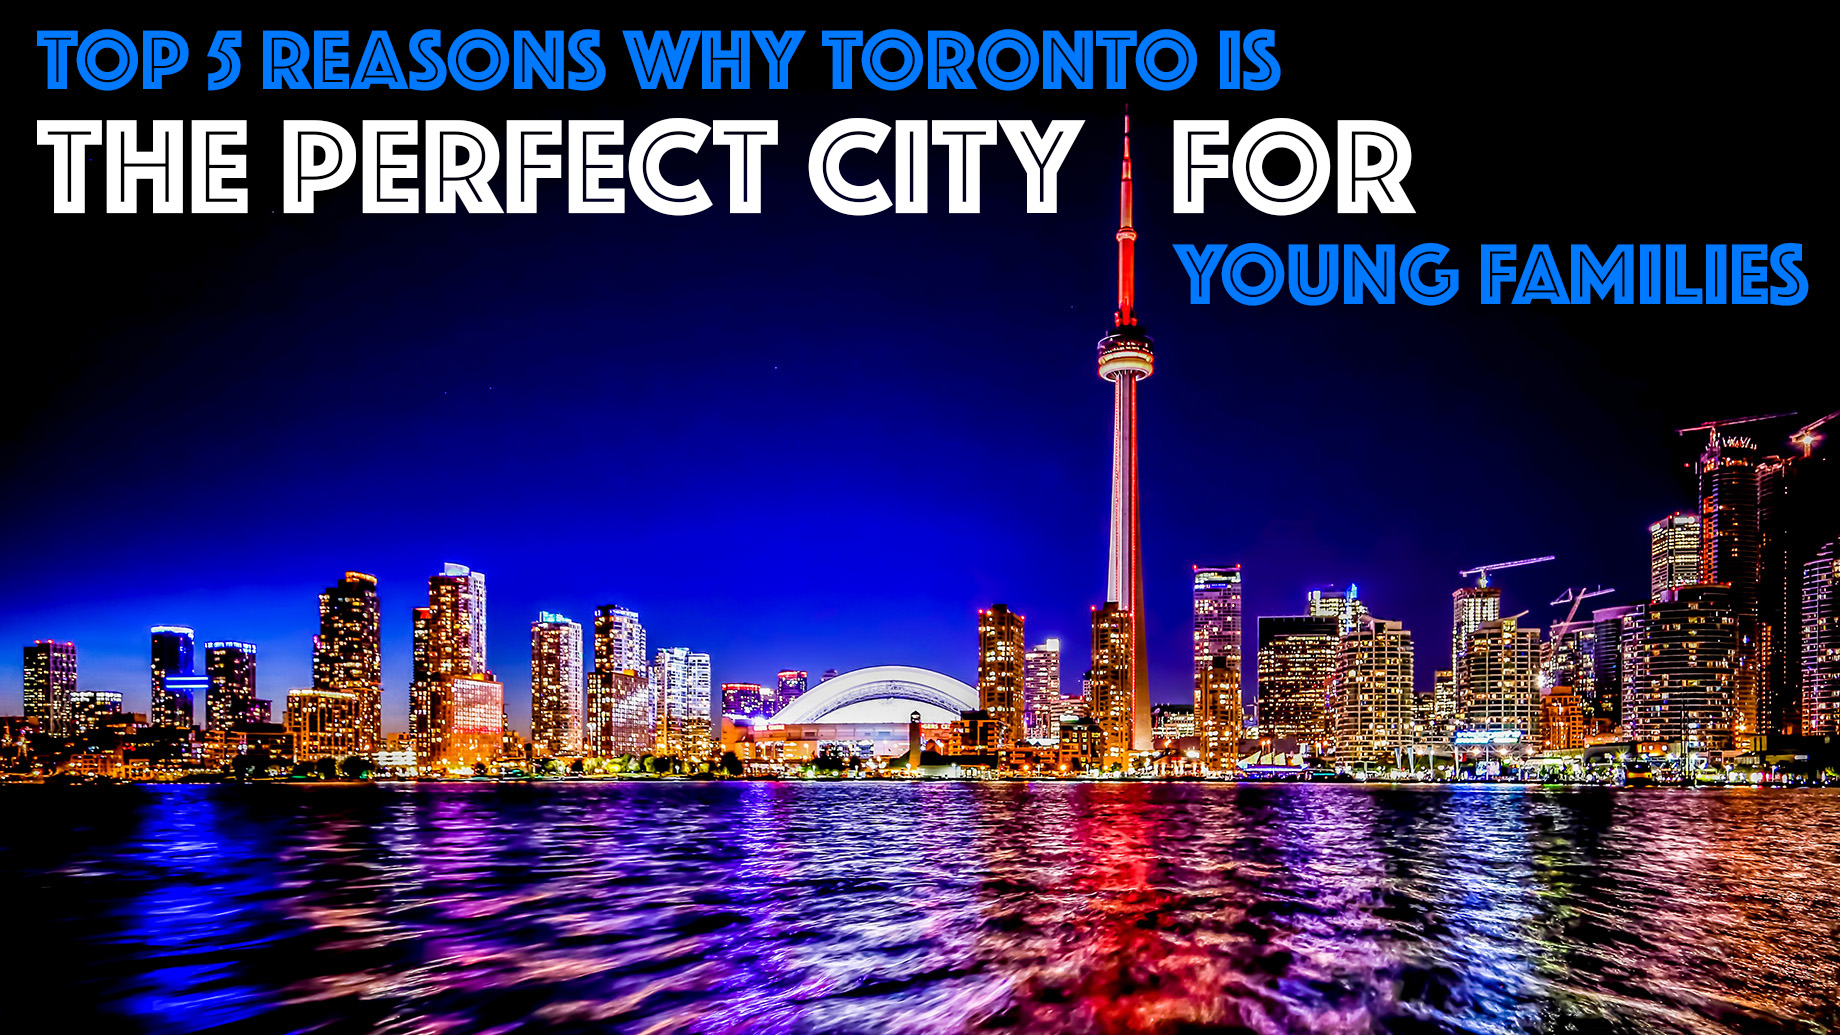 Top 5 Reasons Why Toronto is the Perfect City for Young Families